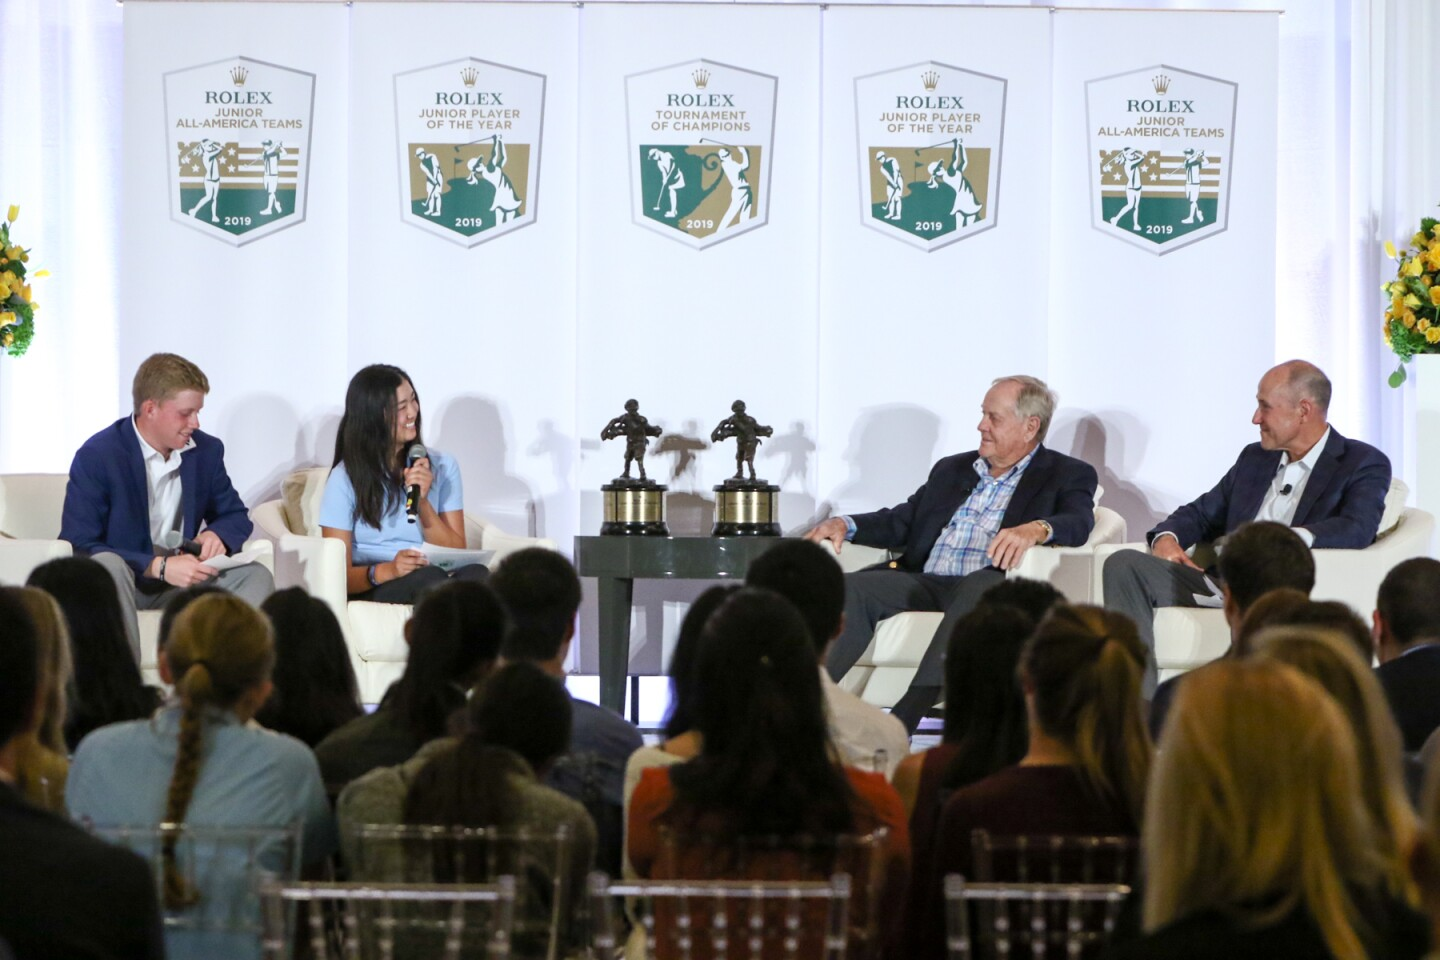 Maxwell Moldovan, Rose Zhang on stage with Jack Nicklaus and Stephen Hamblin at Rolex Tournament of Champions.jpg